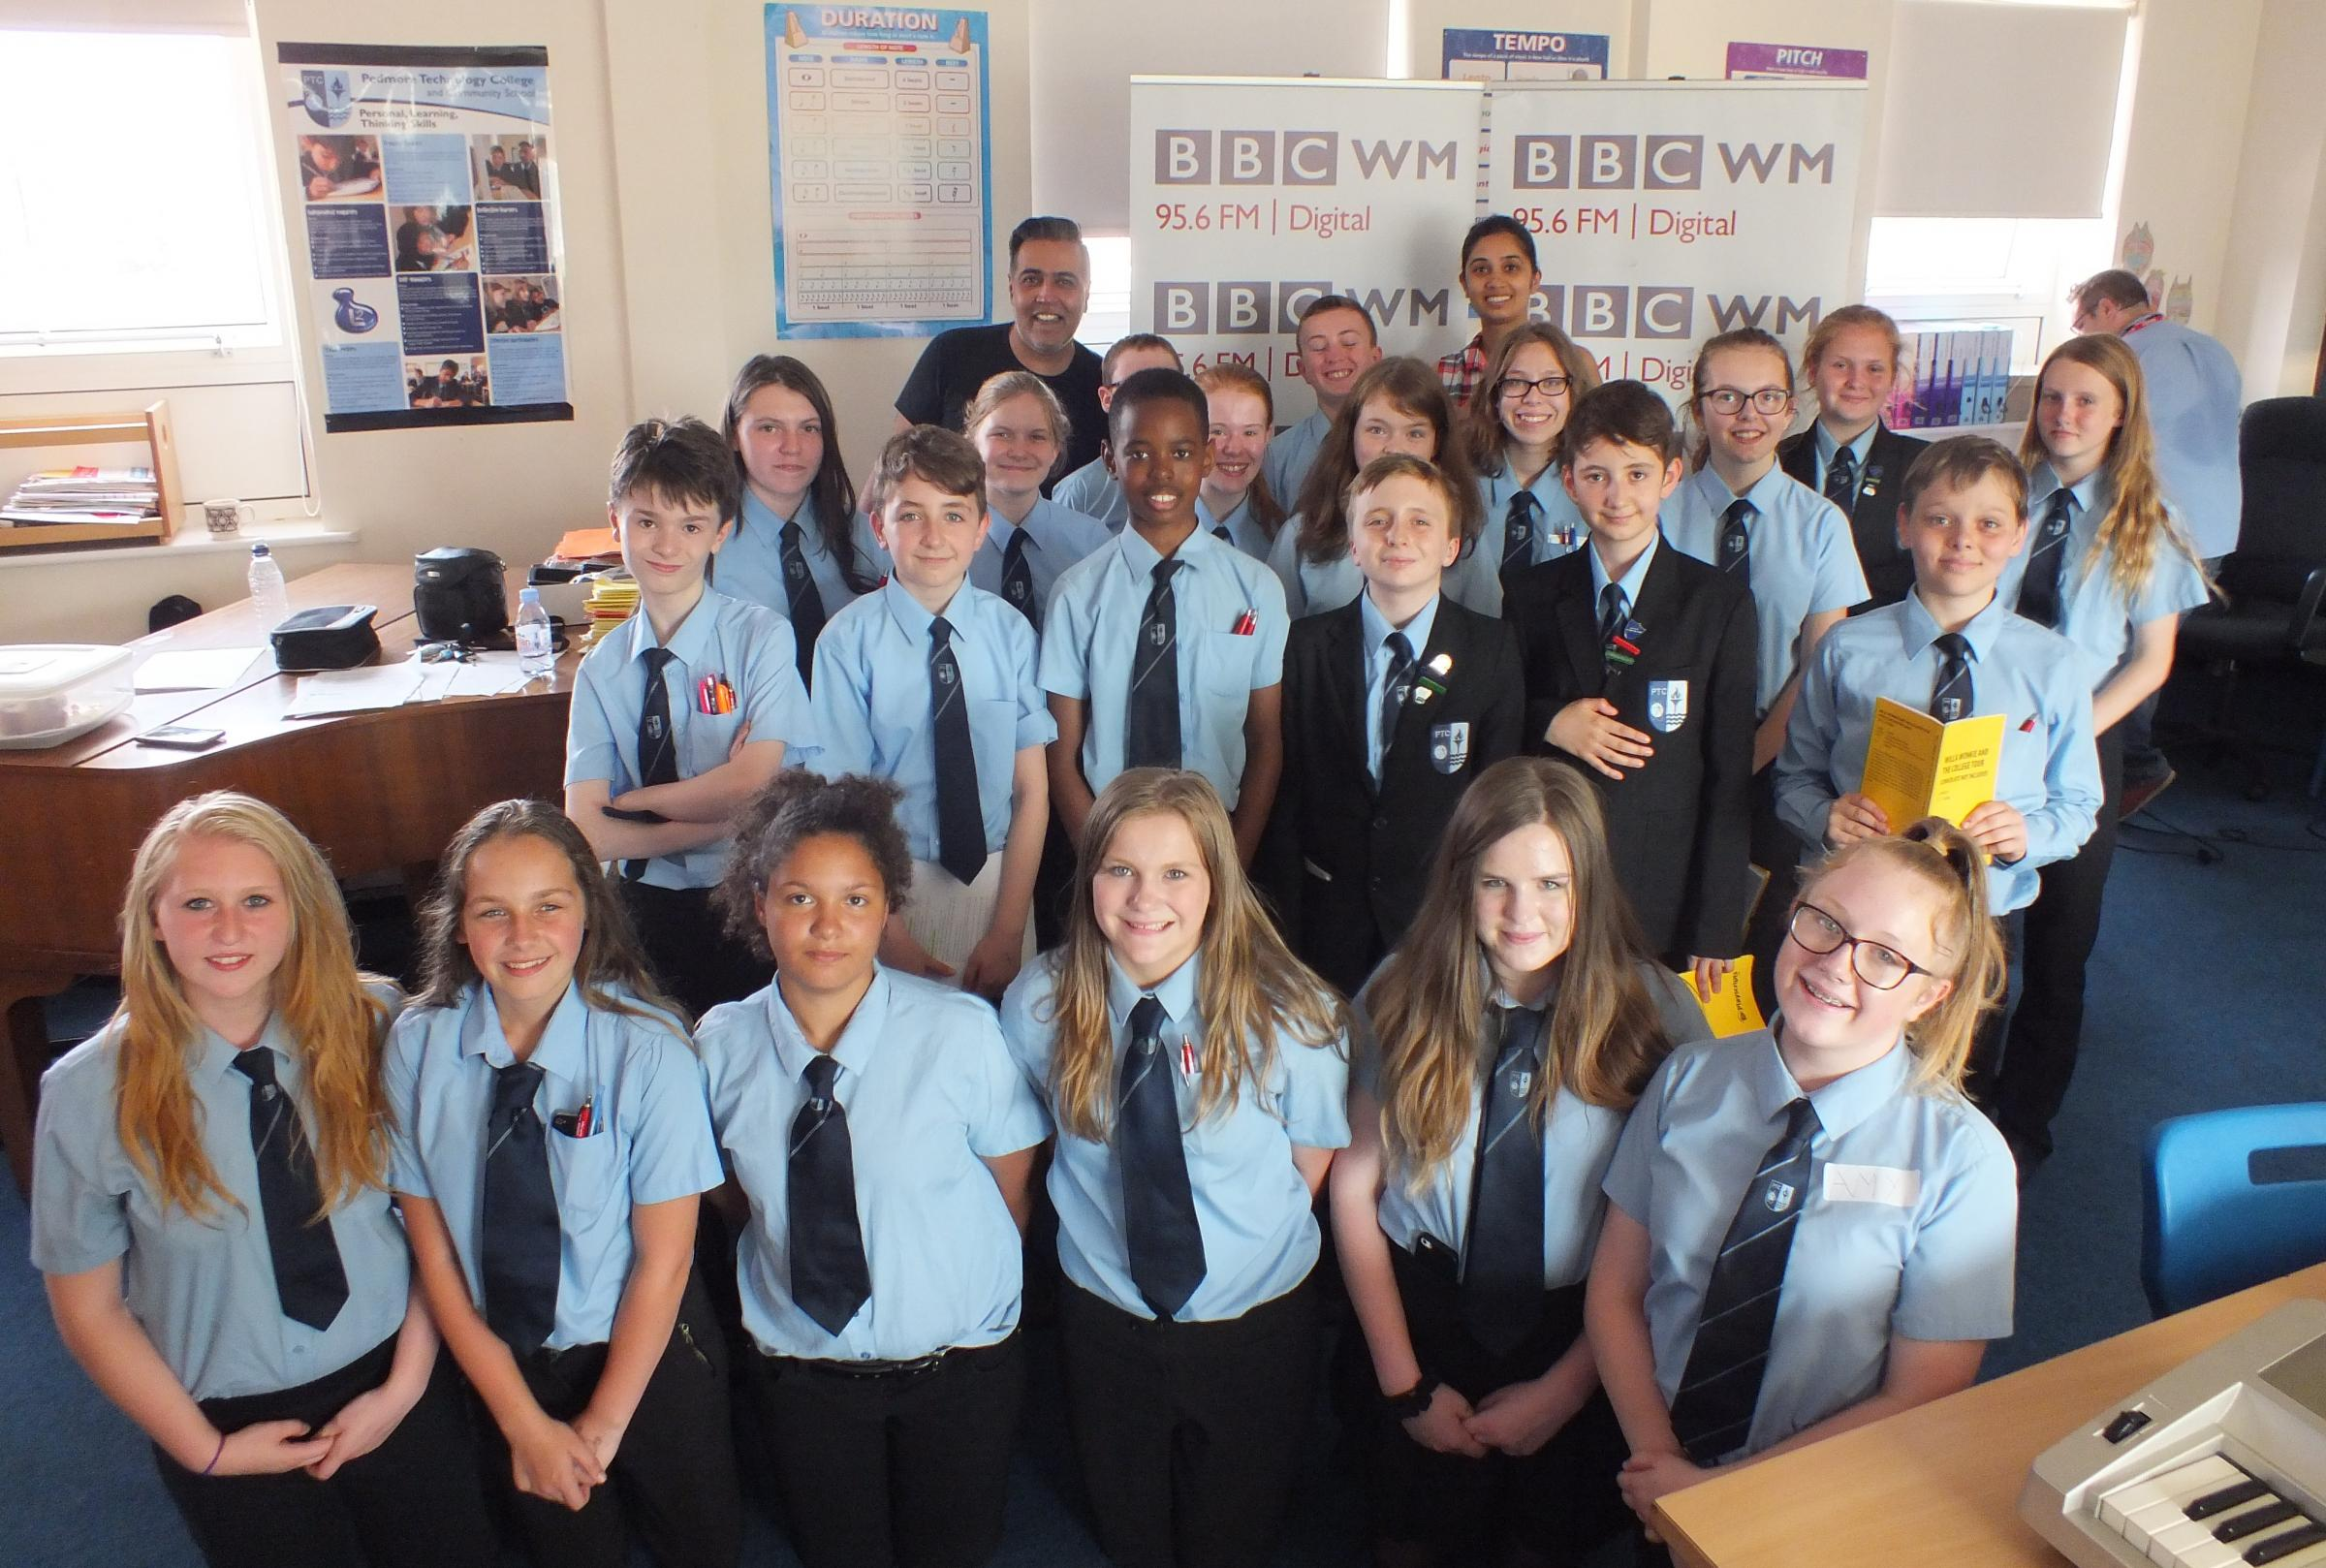 Students shine on radio as BBC WM DJs broadcast from Stourbridge school